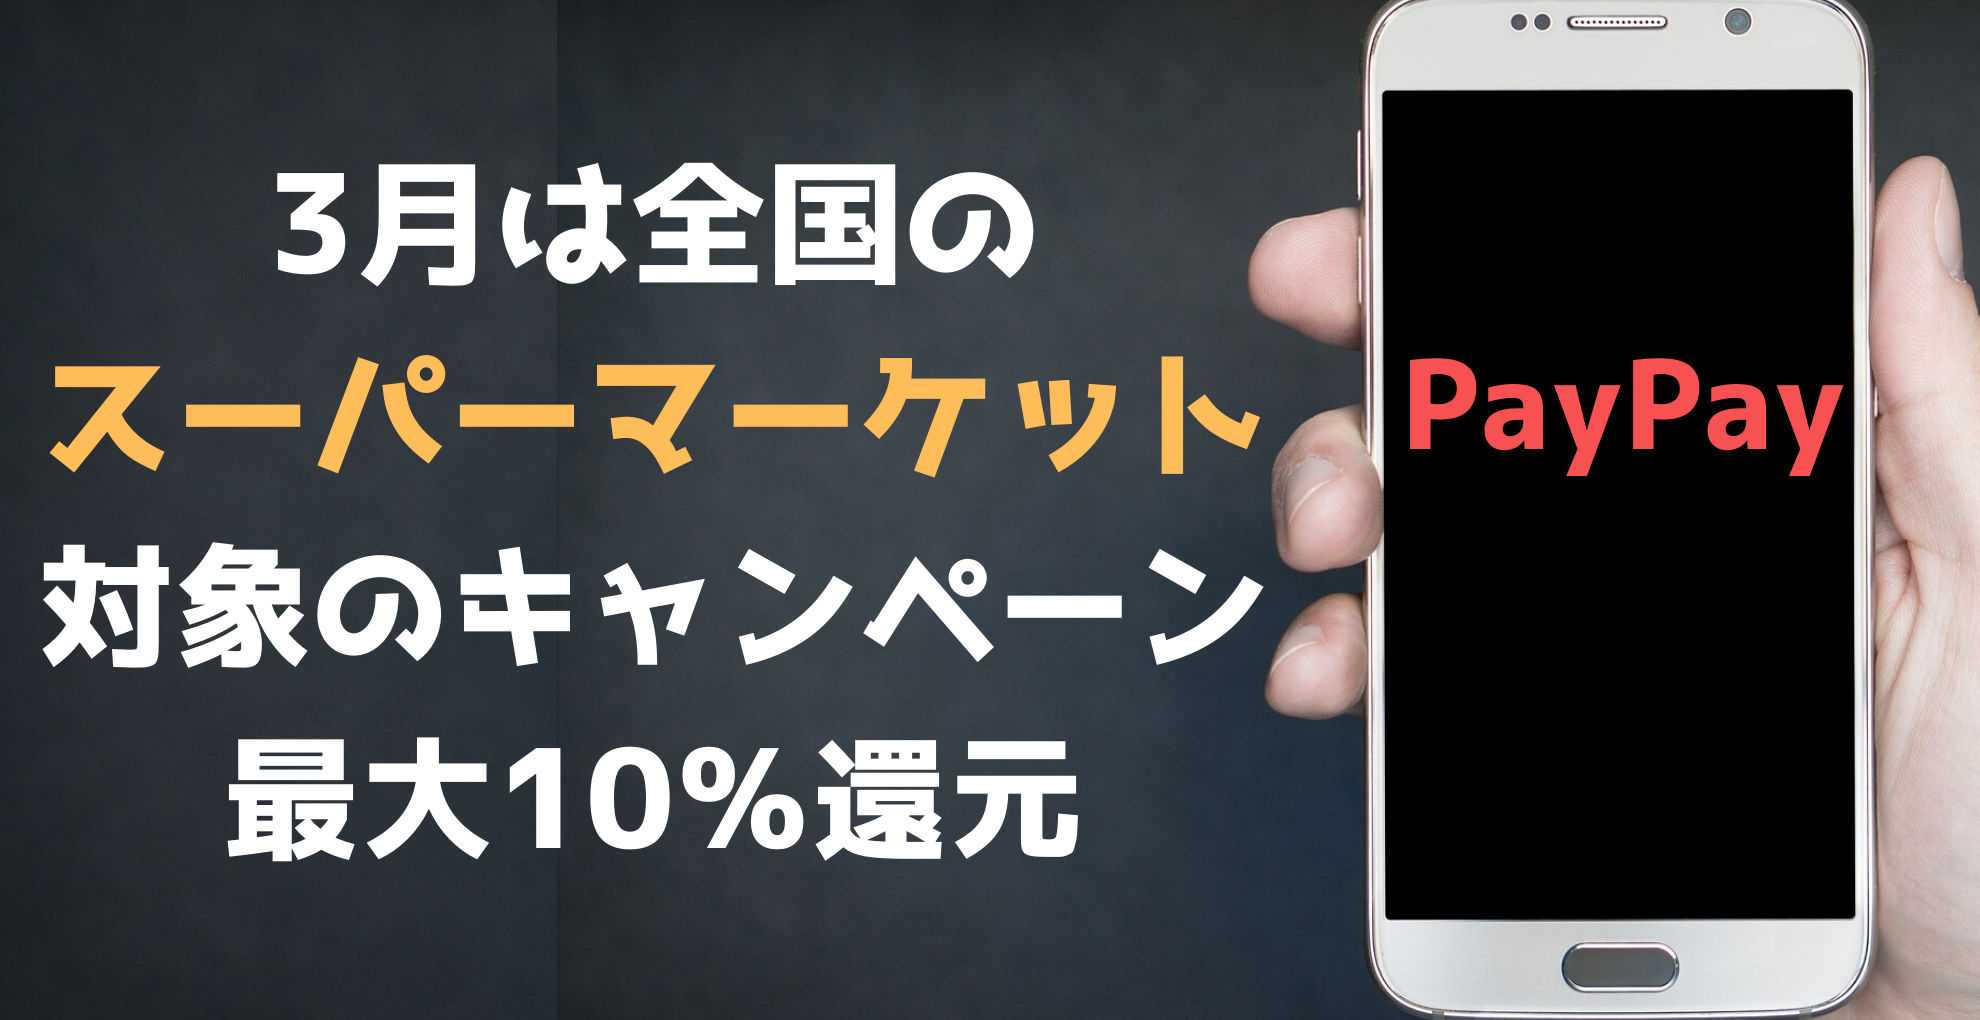 【PayPay】3月は全国のスーパーマーケット対象のキャンペーン 最大10%還元